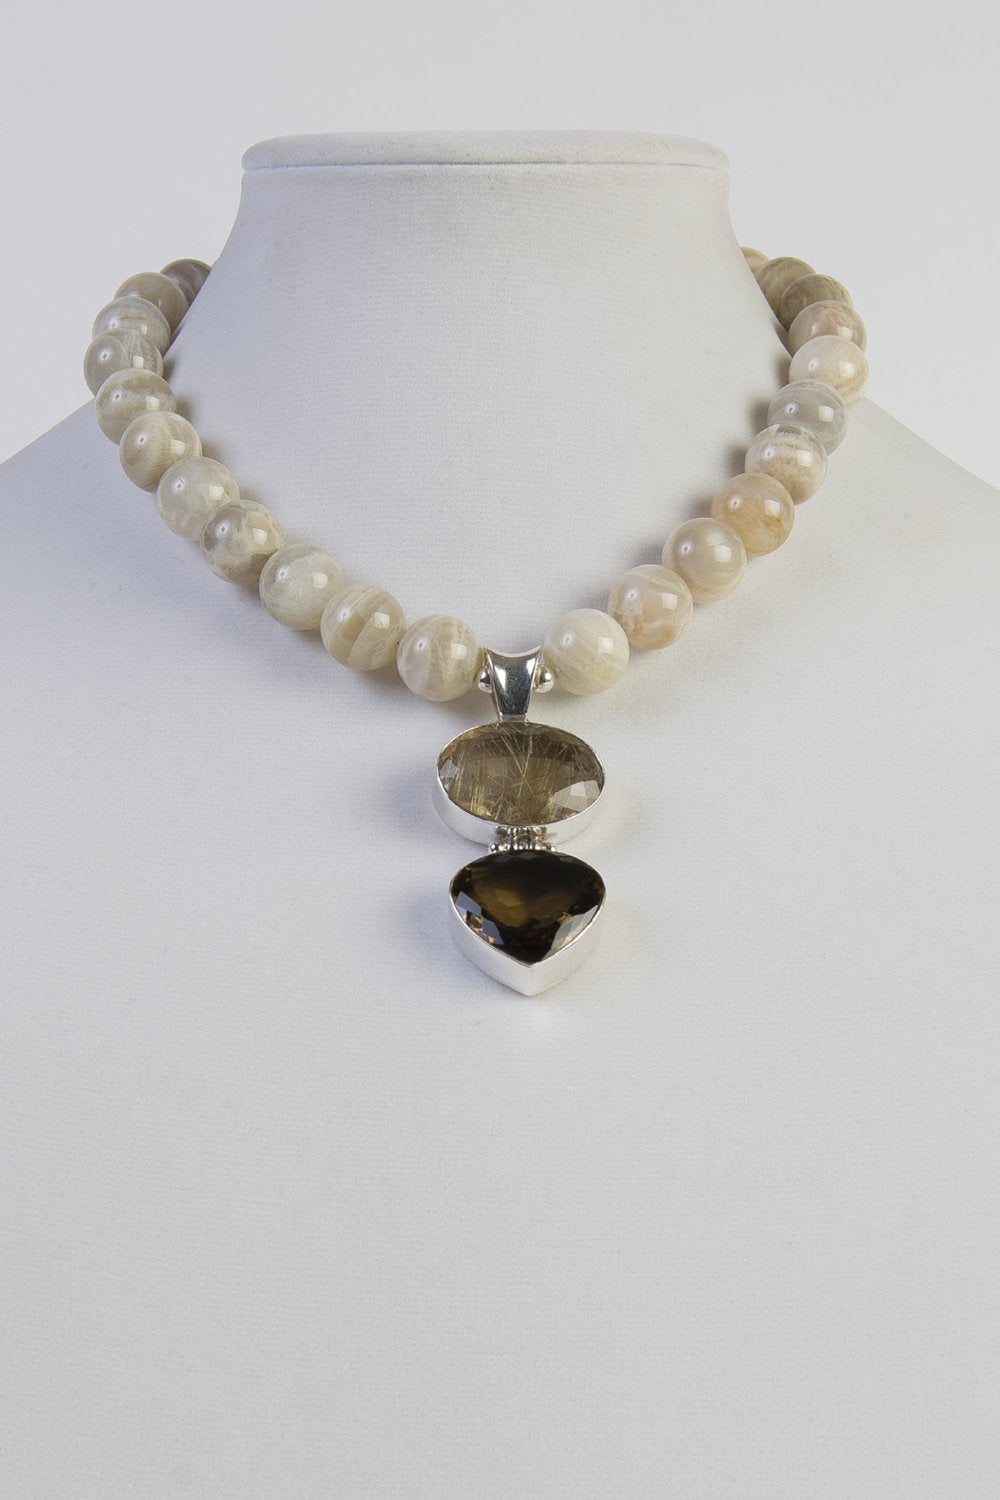 Agate beads with citrine and smoky quartz pendant